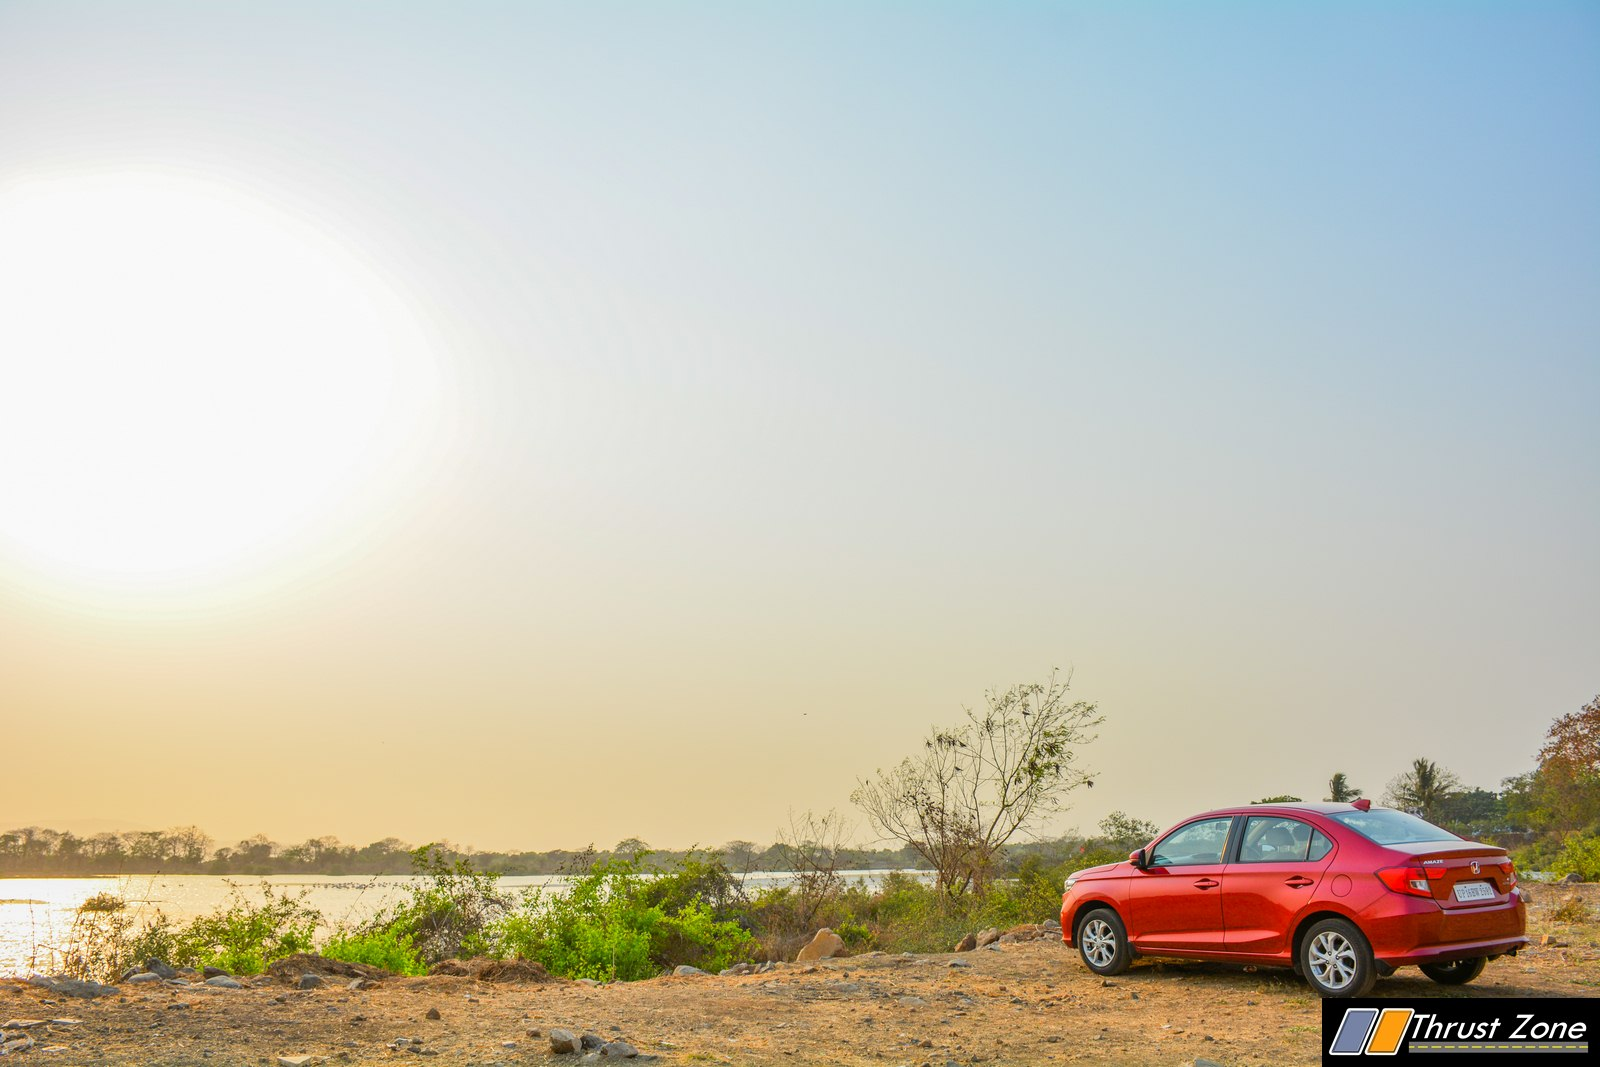 https://www.thrustzone.com/wp-content/uploads/2019/05/Honda-Amaze-CVT-Diesel-Review-3.jpg